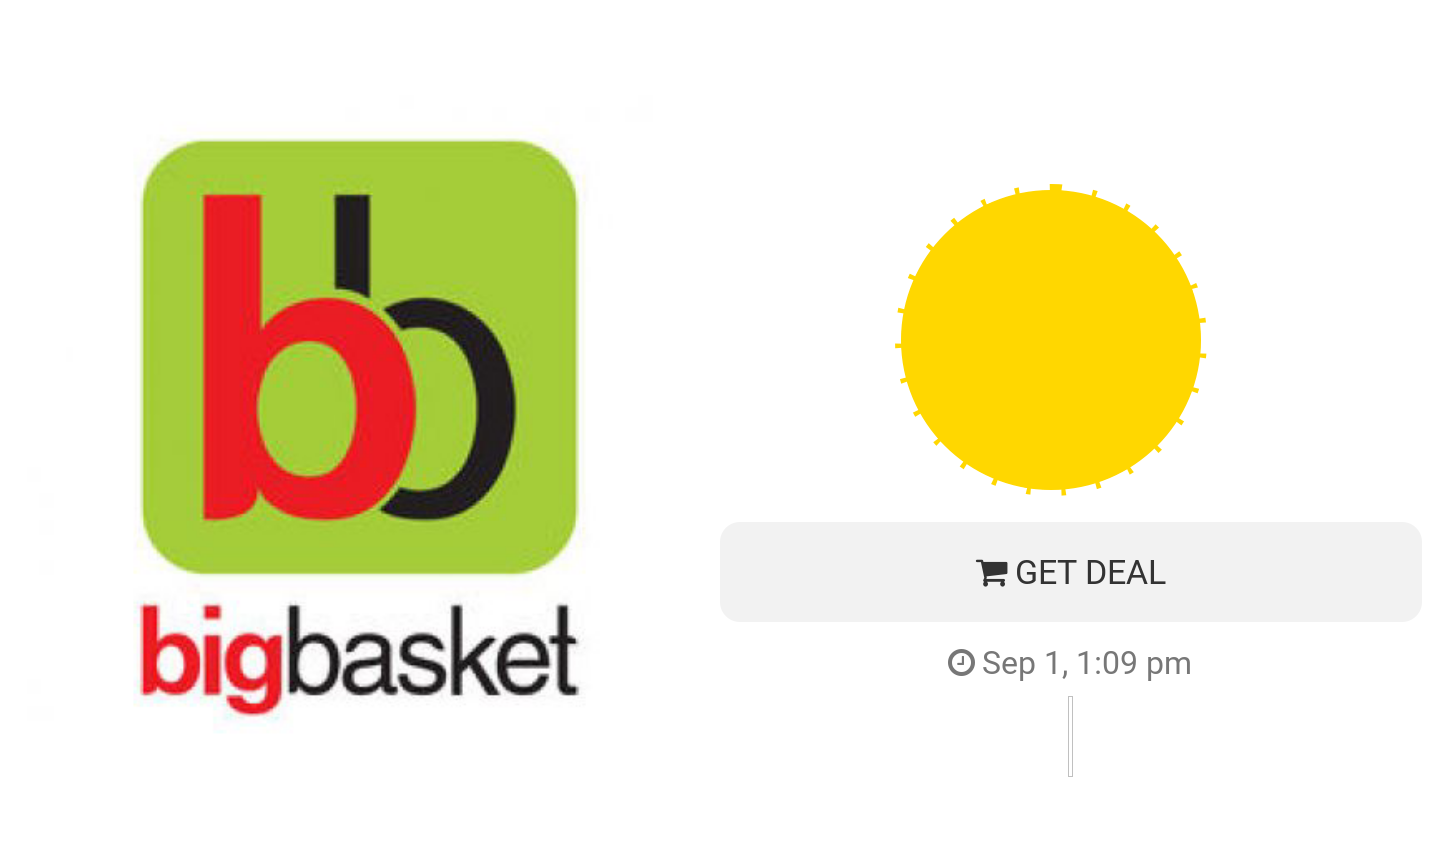 25% Cashback (Max Rs 250) on Bigbasket Purchase of Rs 600